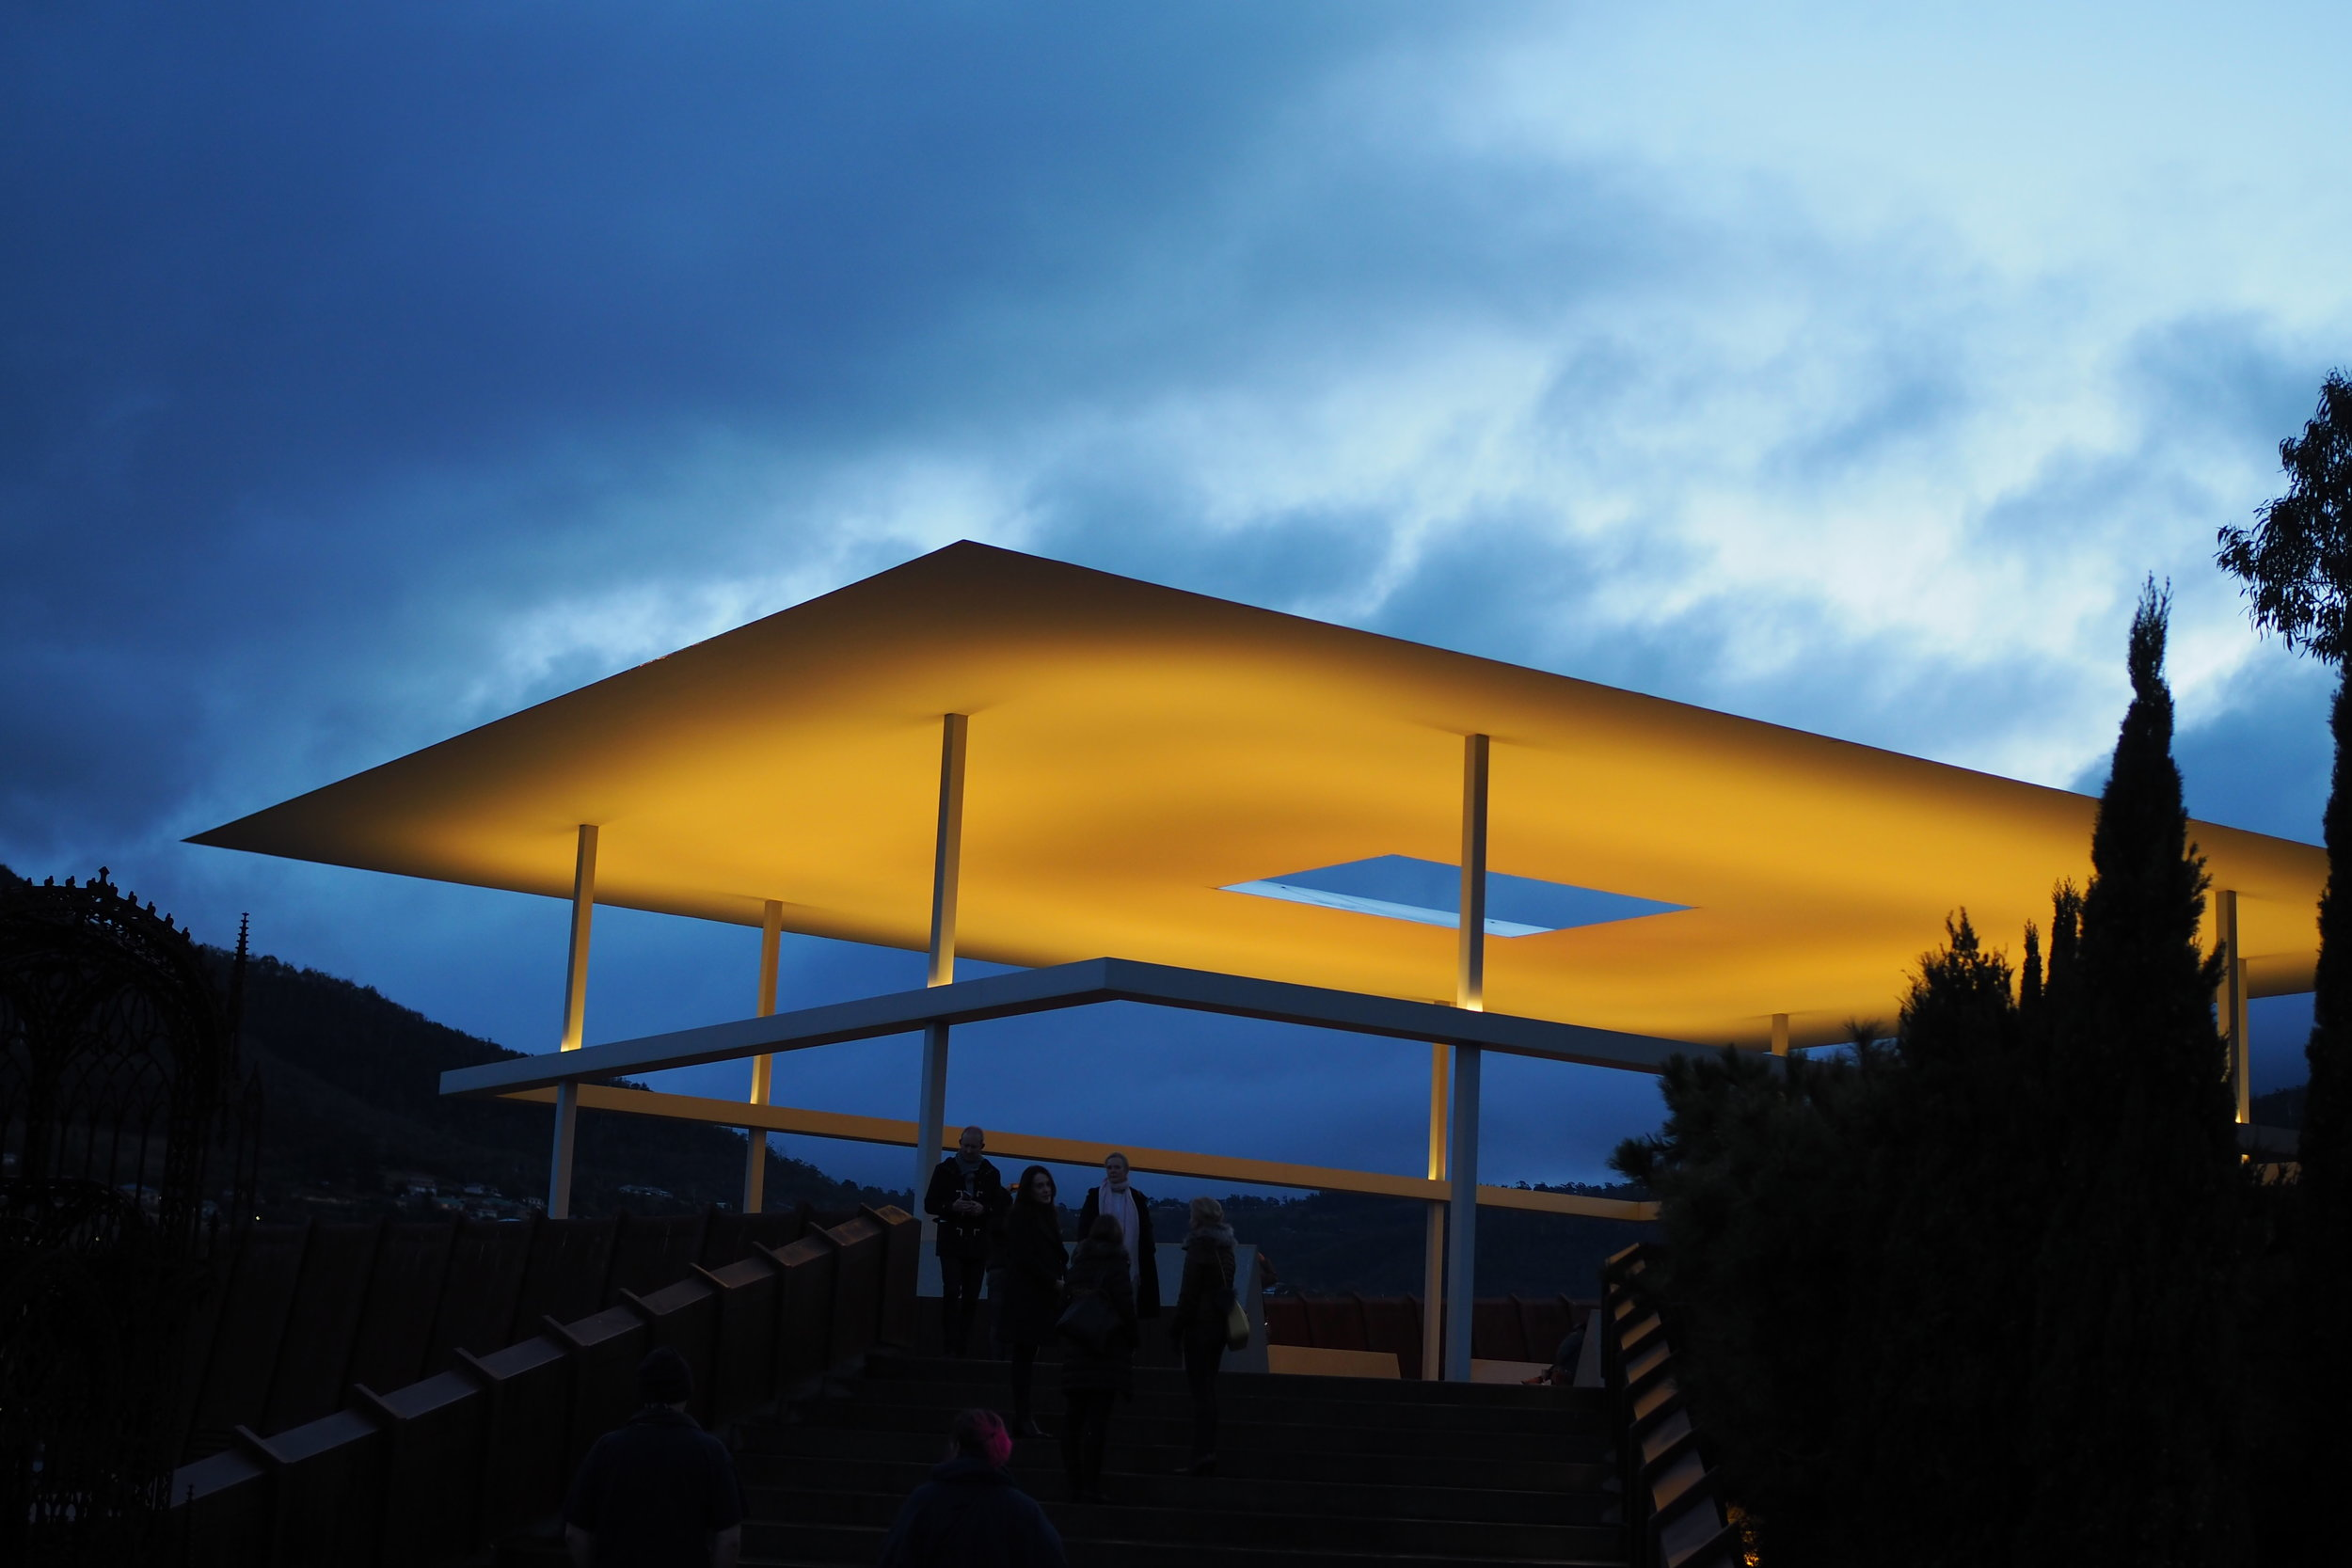 James Turrell's Amarna elevated as if it were God's gazebo